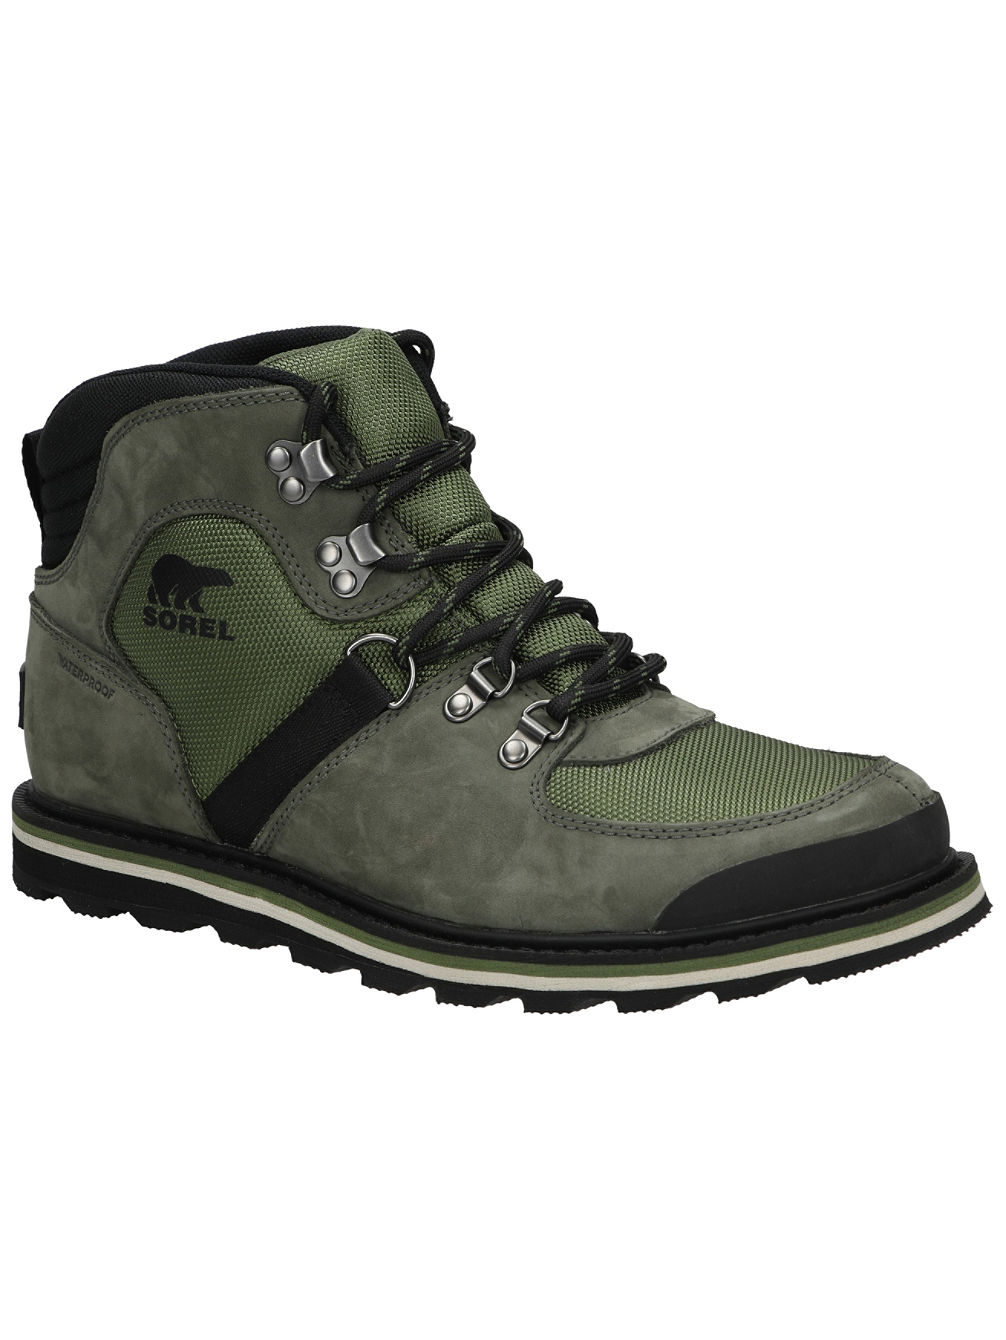 Madson Sport Hiker Chaussures D'Hiver